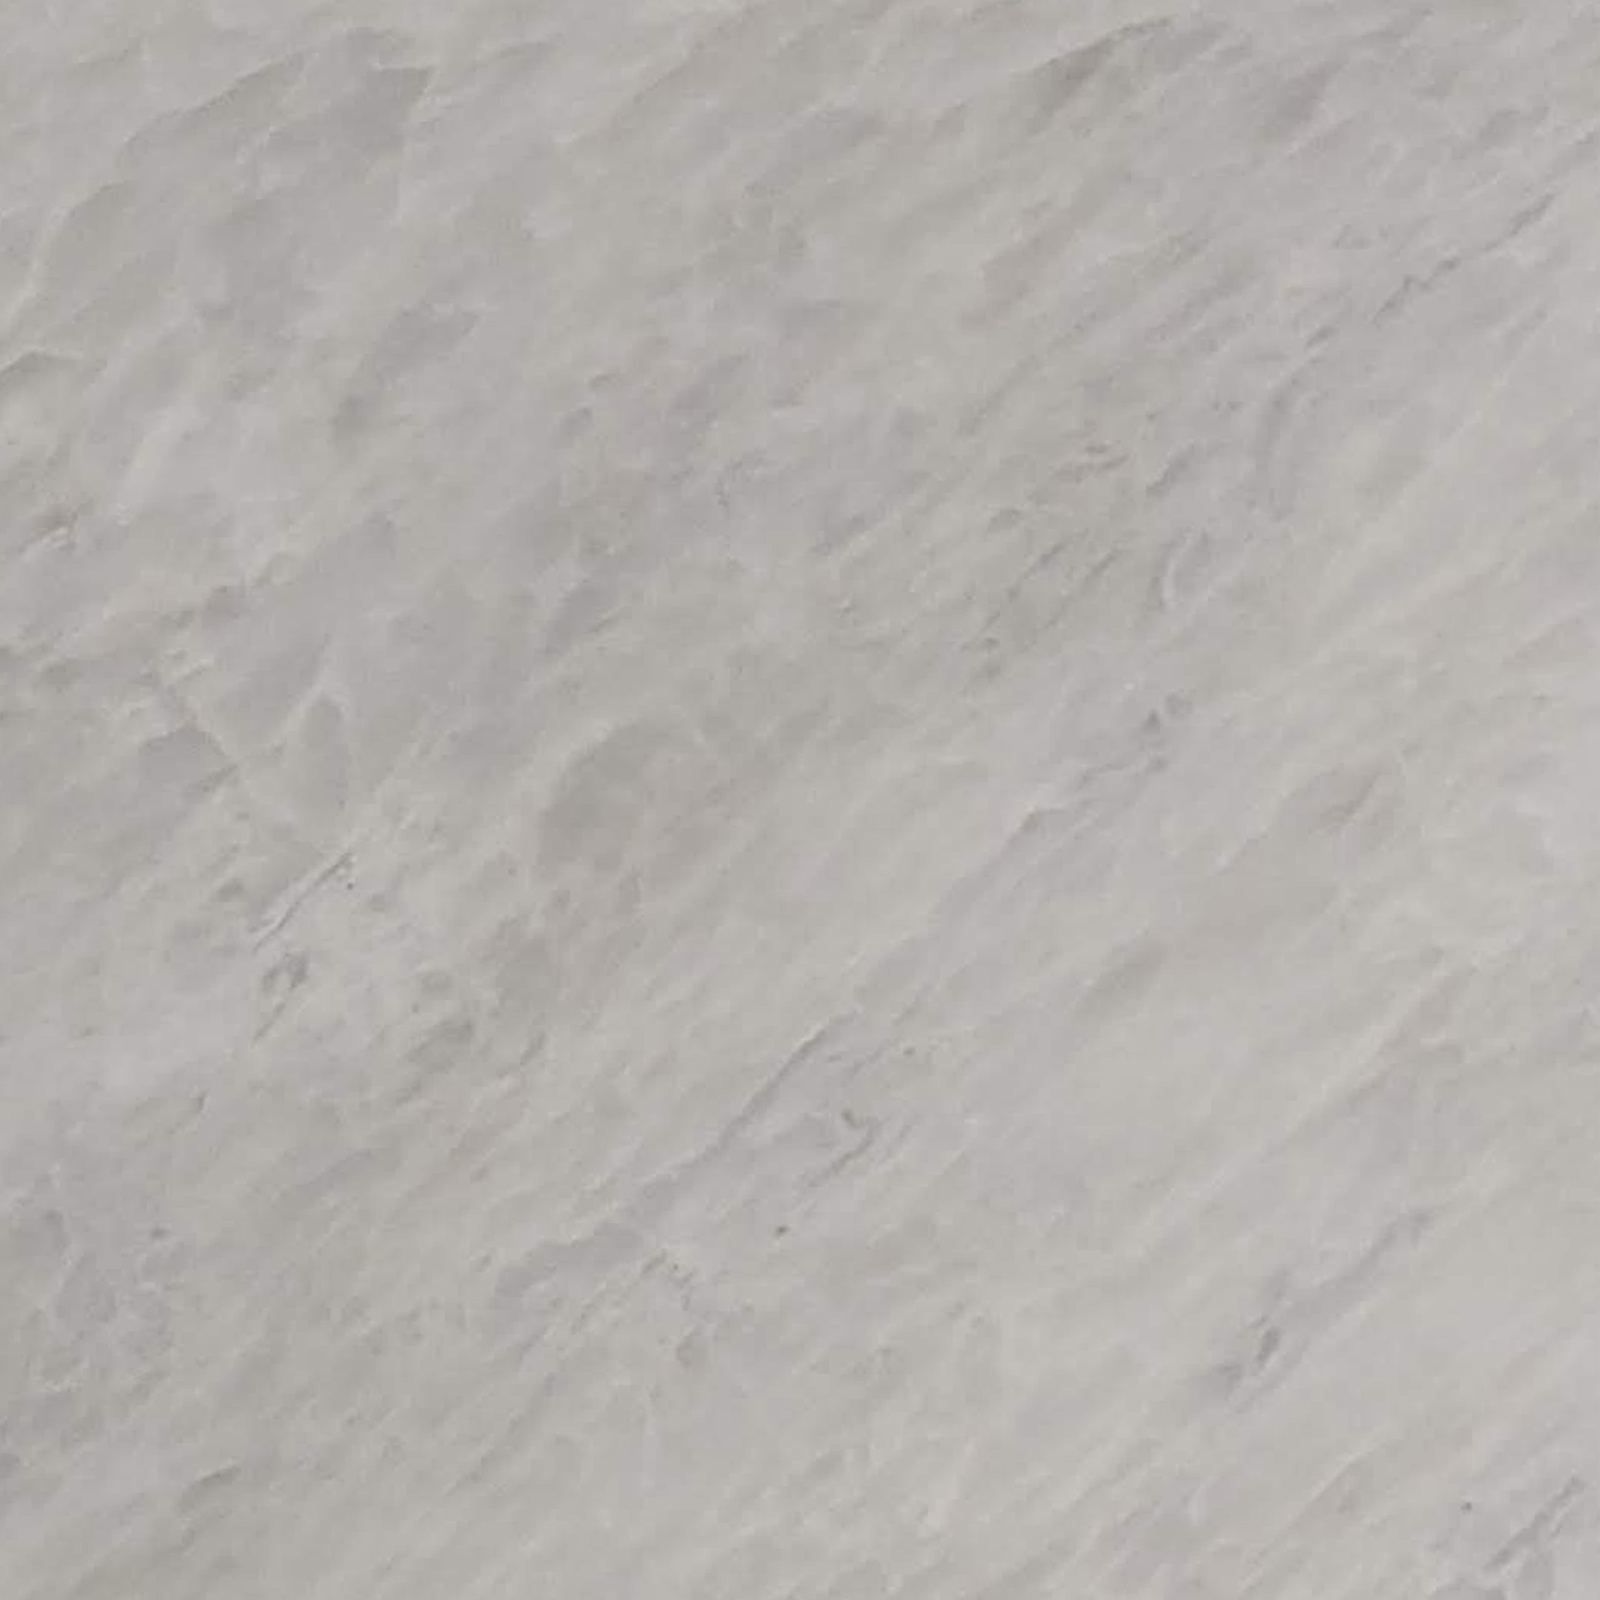 12x12 Alaska White Marble Polished Tile